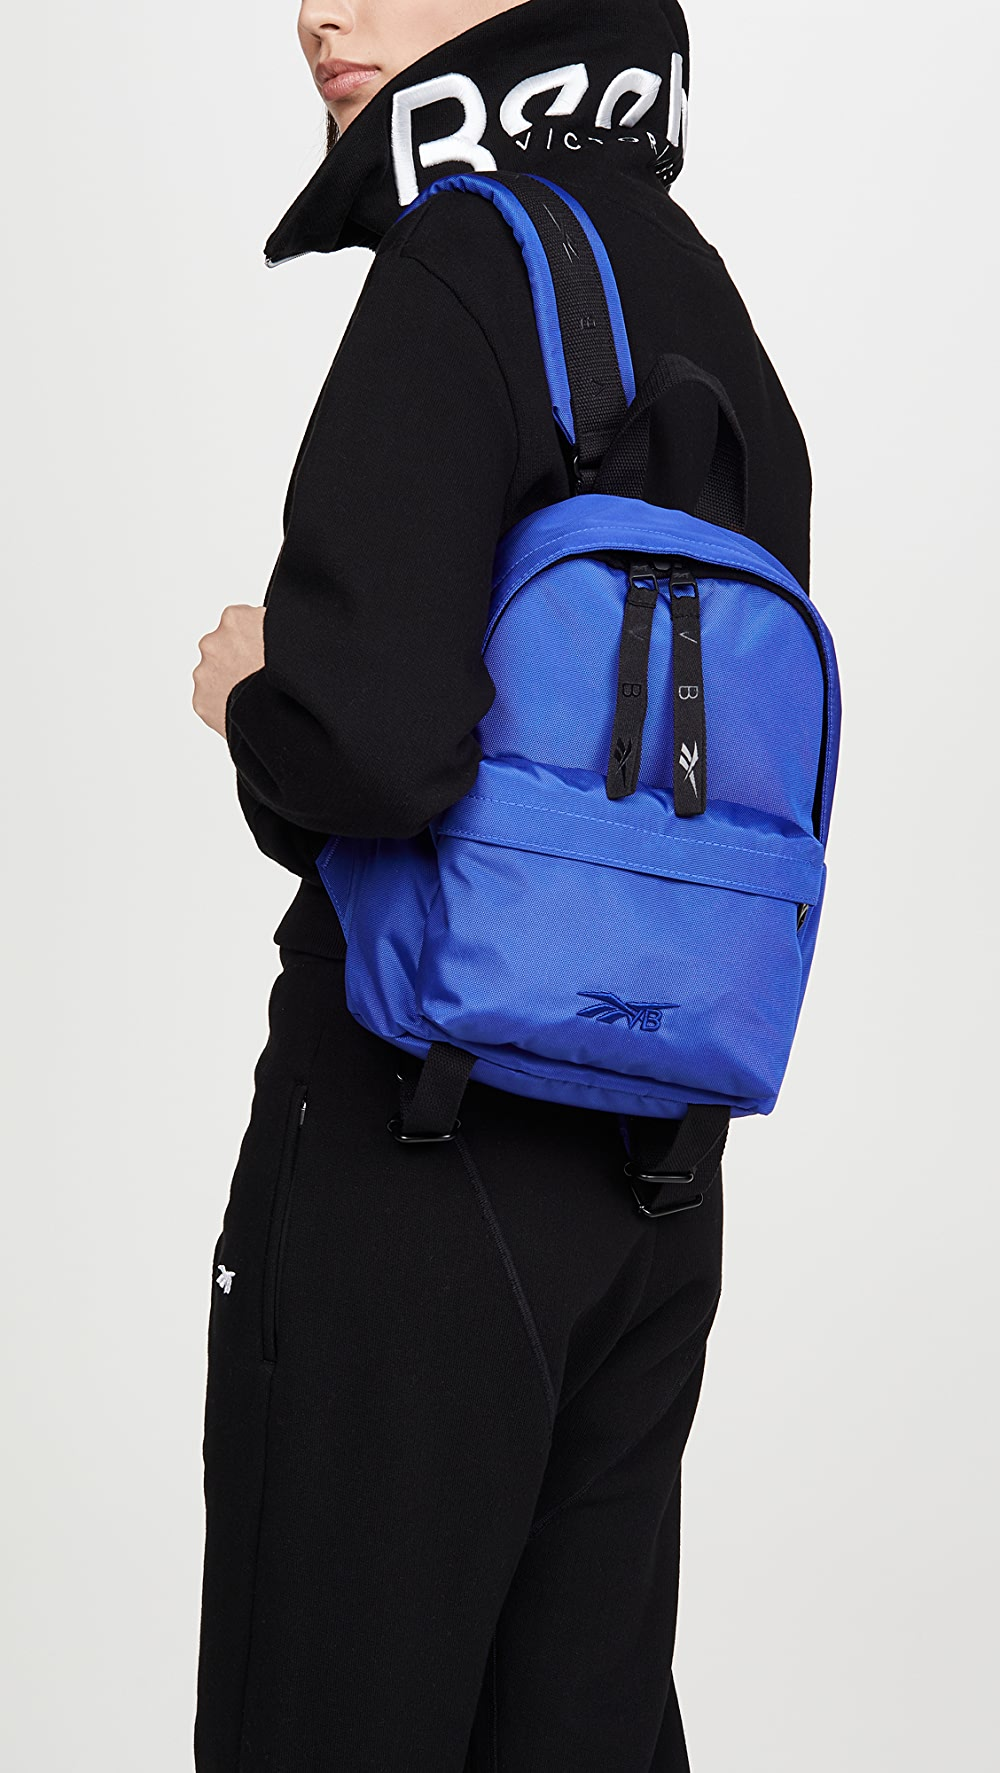 Lovely Reebok X Victoria Beckham - Rbk Vb Mini Backpack To Win Warm Praise From Customers